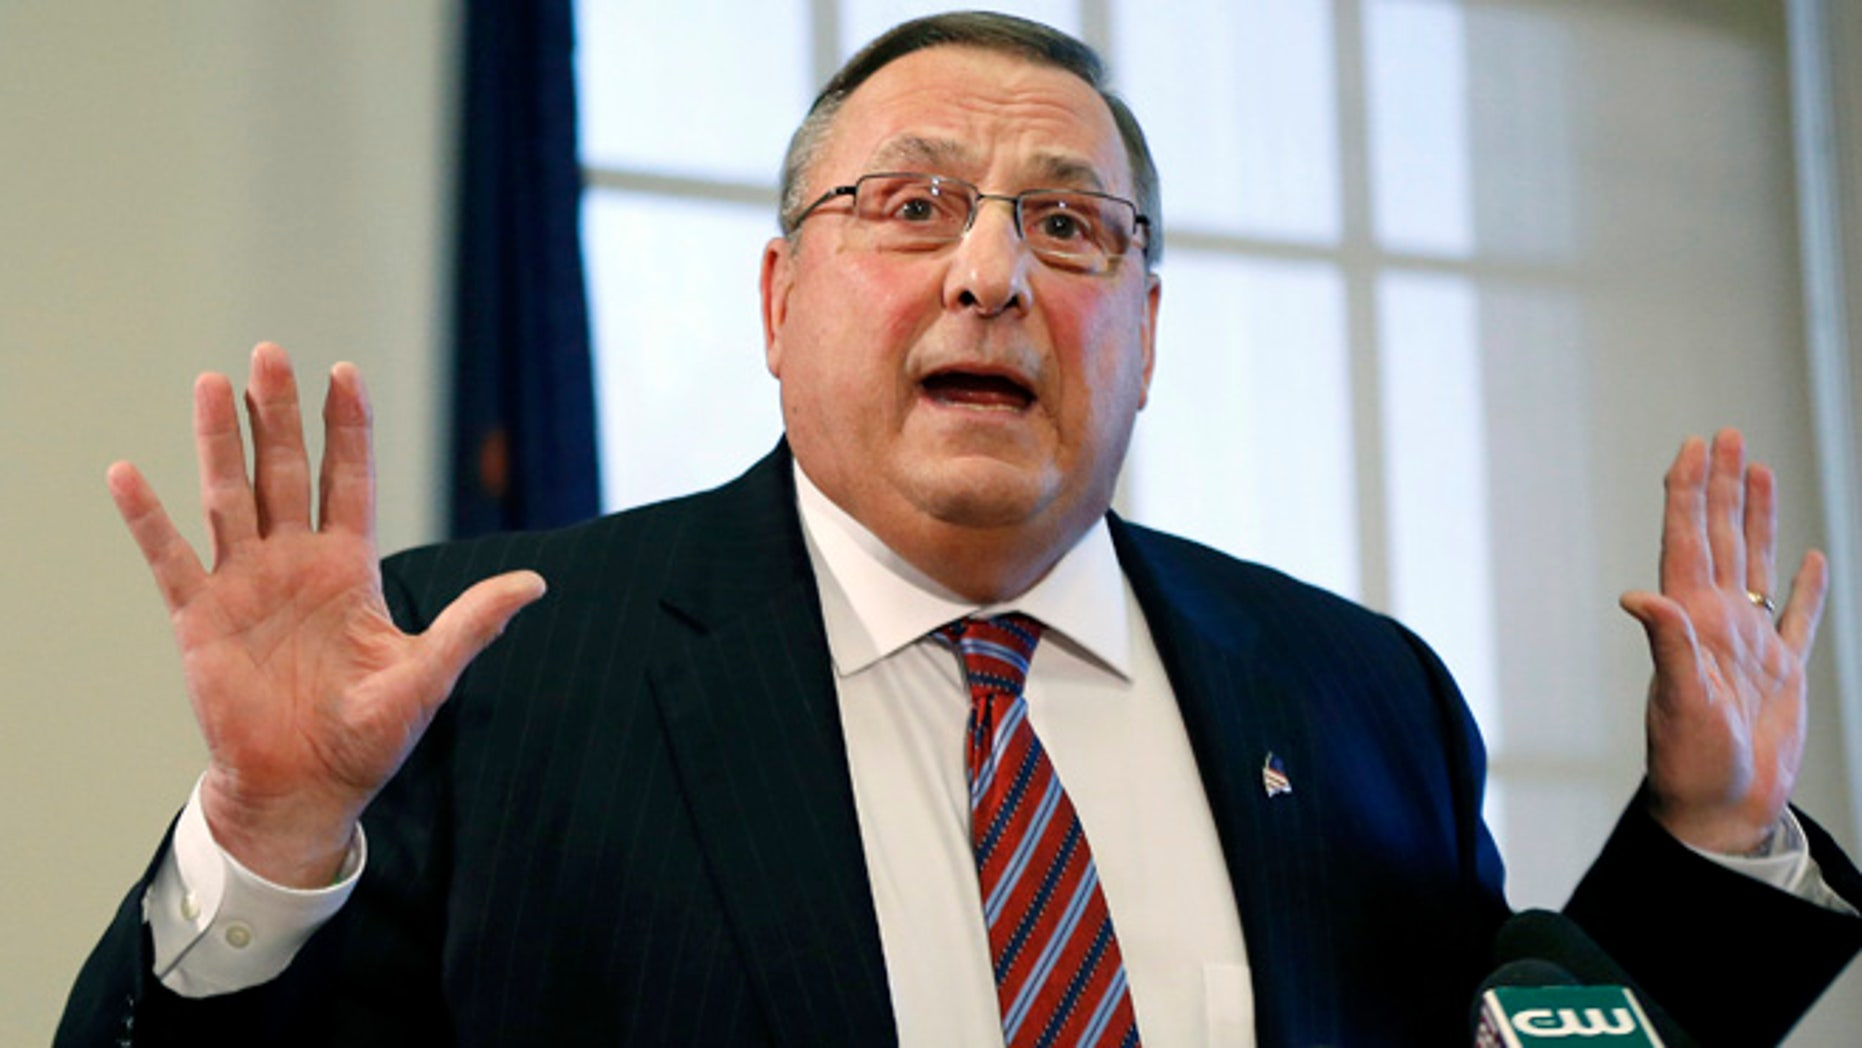 """FILE - In this Jan. 8, 2016, file photo, Gov. Paul LePage speaks at a news conference at the State House in Augusta, Maine. Lepage said Wednesday, Aug. 31, 2016, he intends to seek """"spiritual guidance"""" in hopes of quieting a controversy he created when he left an obscene message on a Democratic lawmaker's voicemail and then said he wished he could challenge him to a duel and point a gun at him. LePage said he doesn't intend to talk to the media anymore, a claim he has made before. (AP Photo/Robert F. Bukaty, File)"""